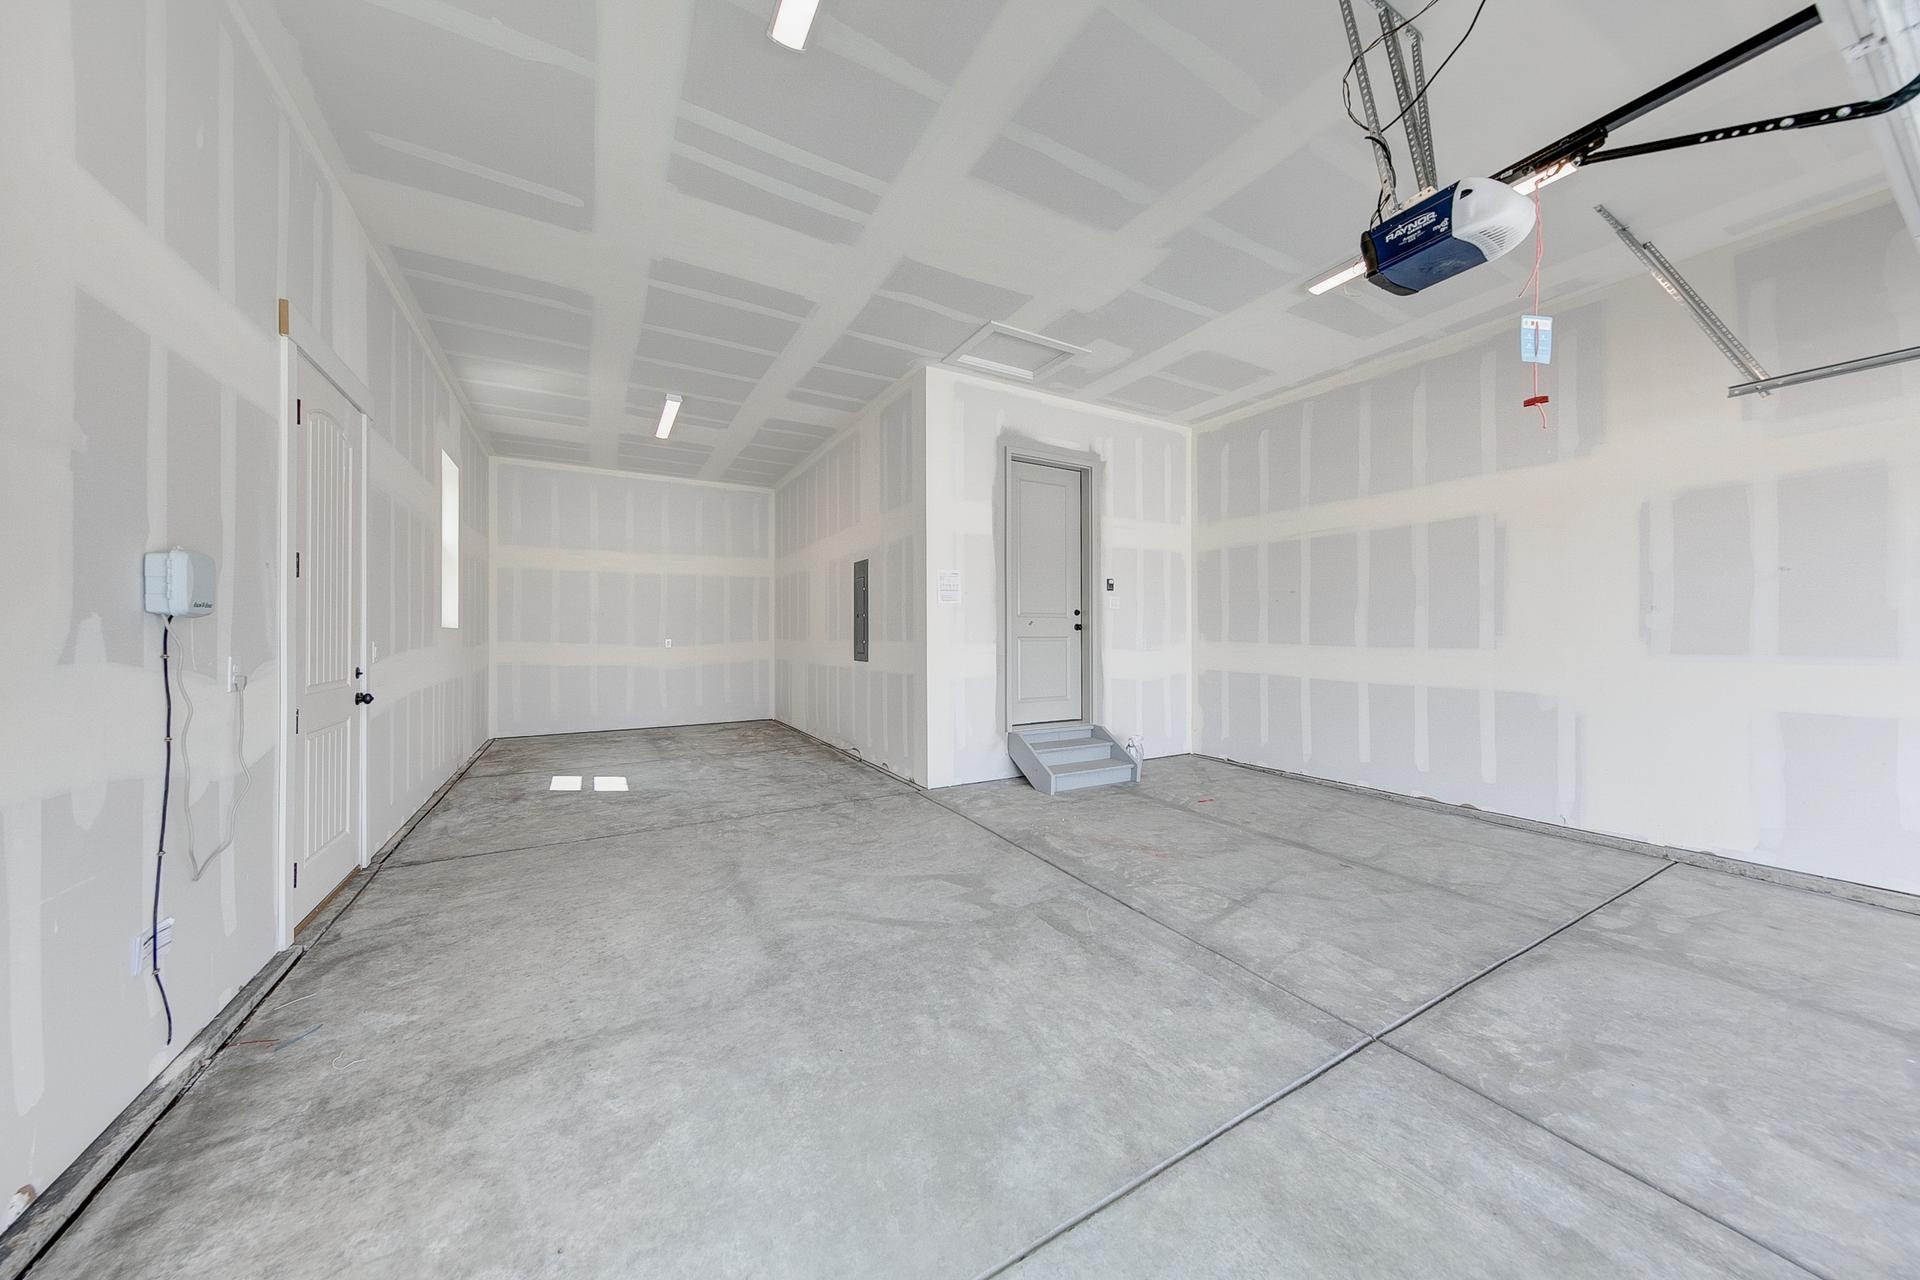 Garage - Not Actual Home - Finishes Will Vary